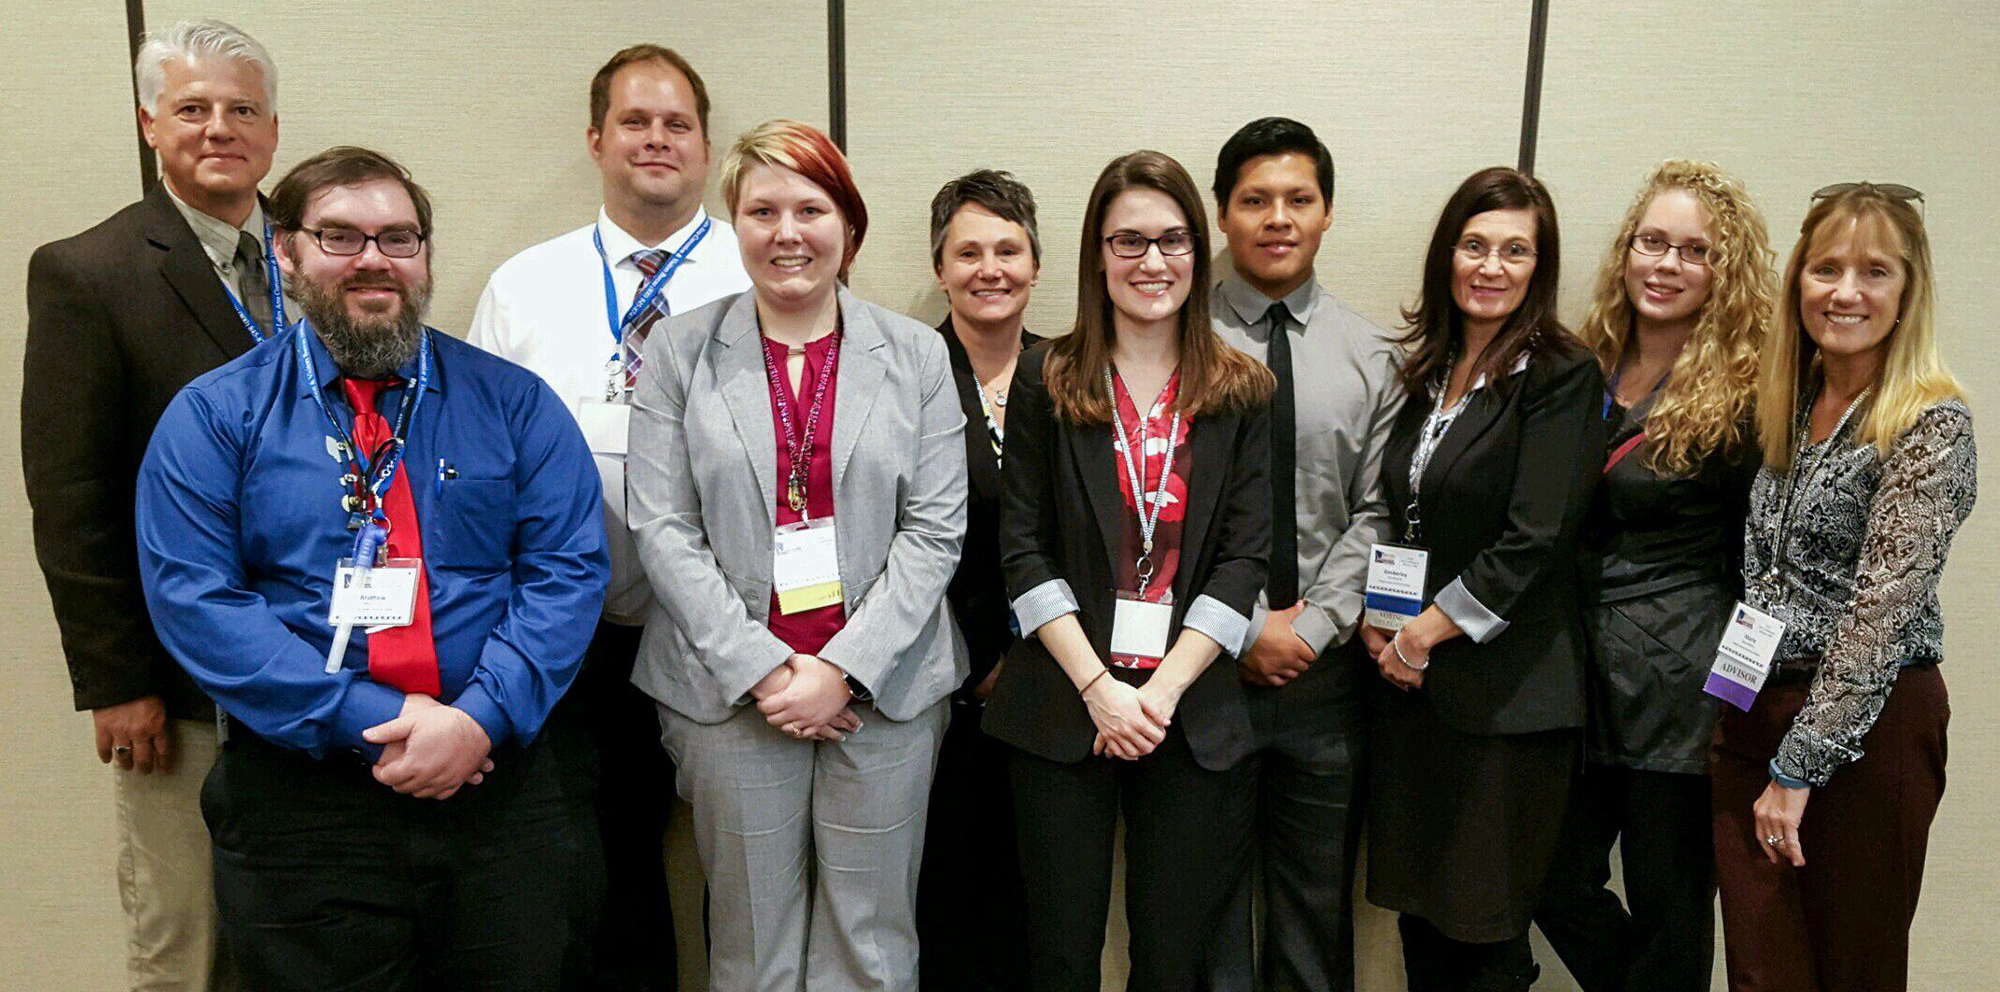 2015 BPA Professional Development Conference in Willmar, Minnesota